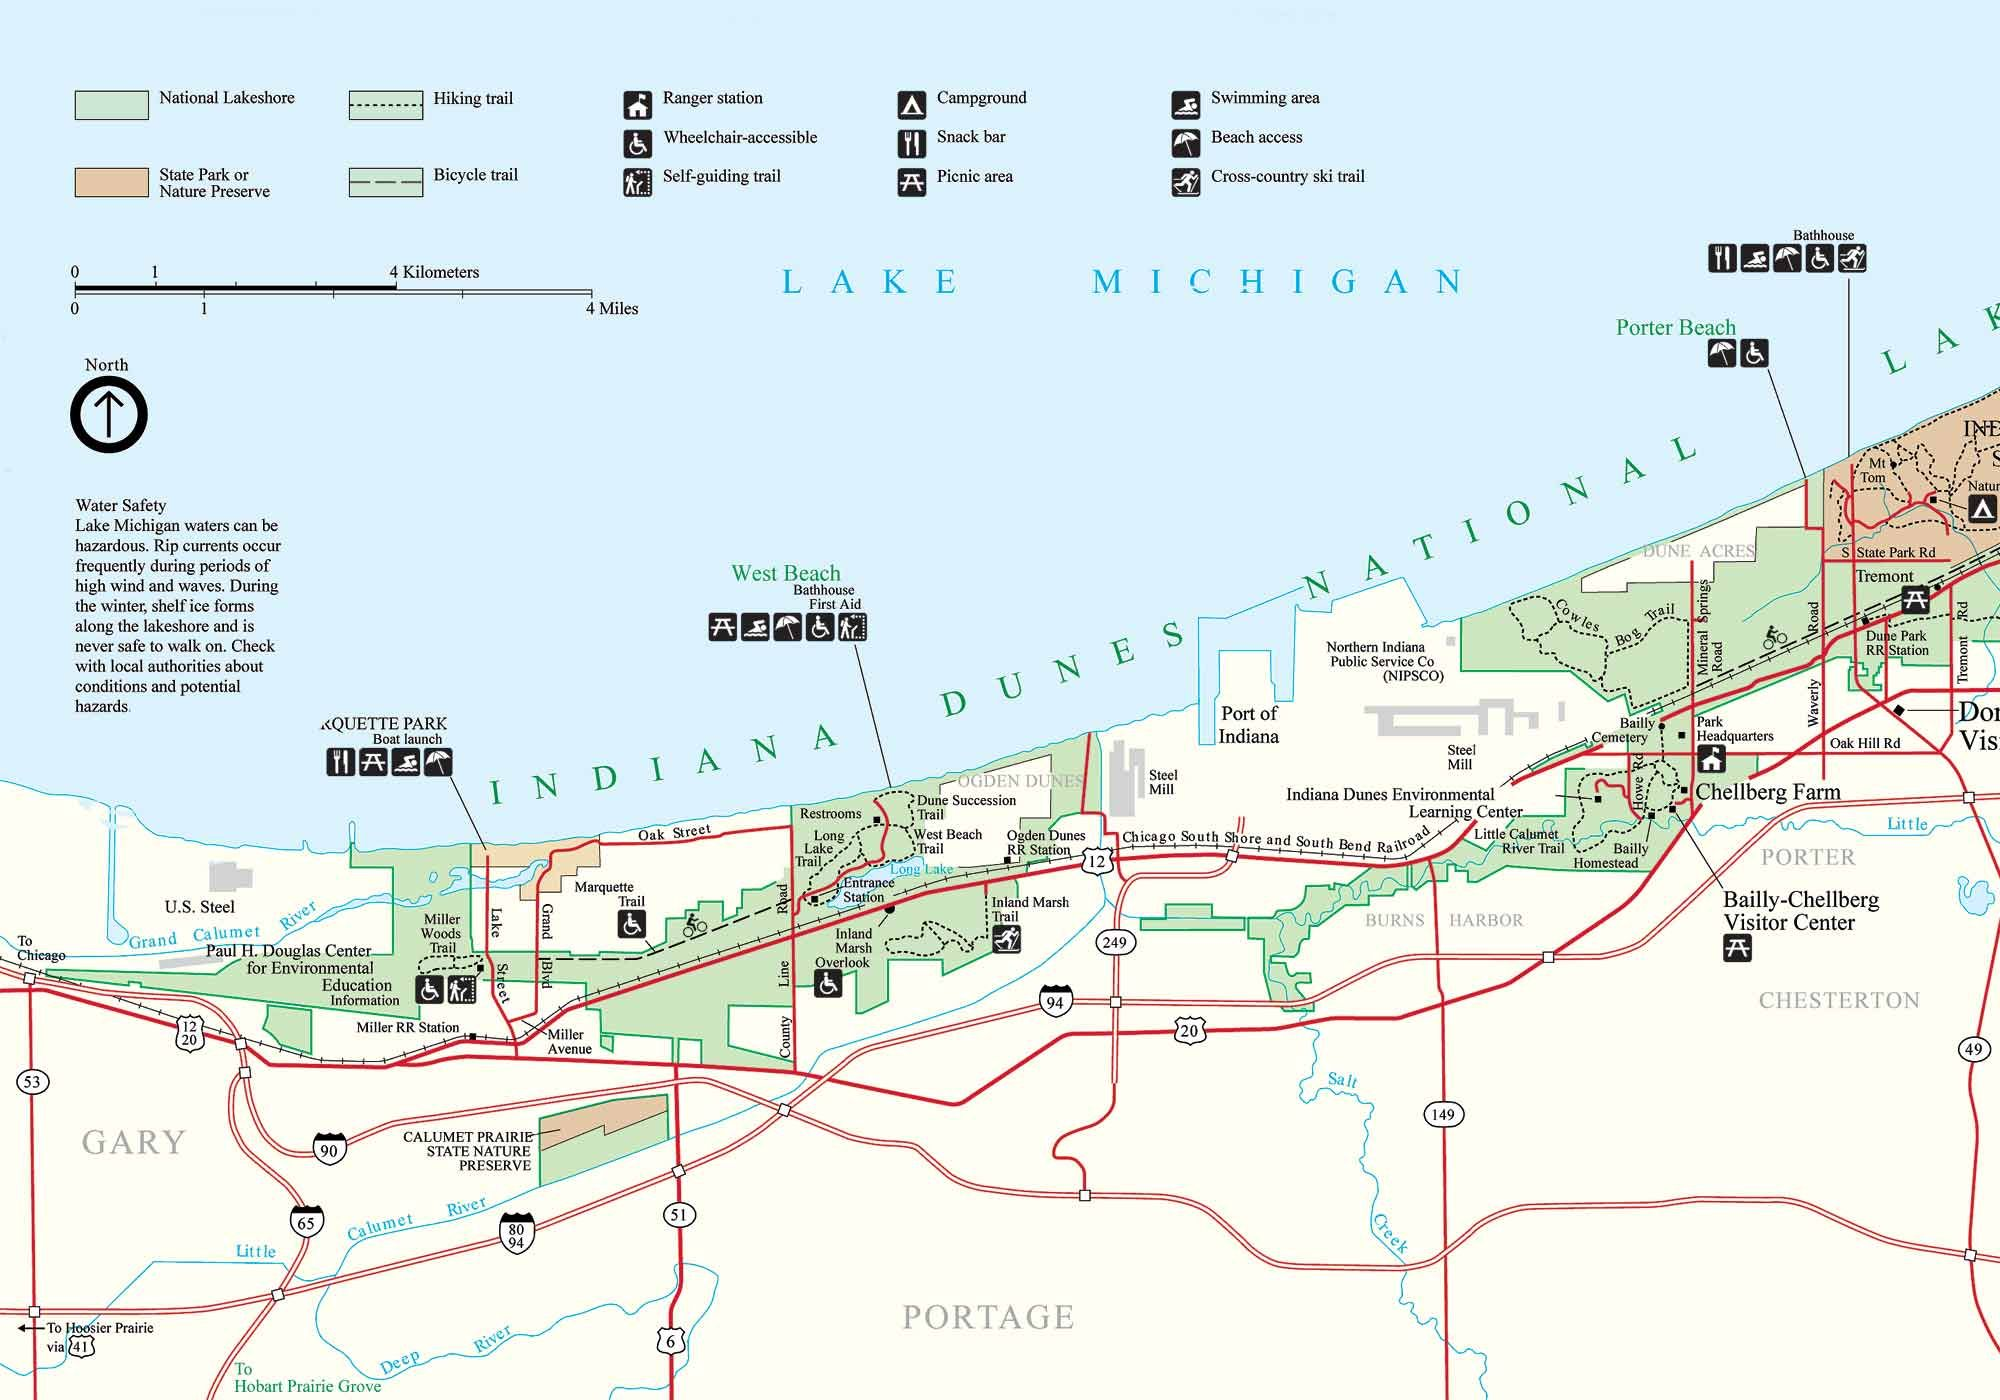 Indiana Dunes Park Map - Gary Indiana USA • mappery | Oh ... on usa map in new jersey, texas in indiana, home in indiana, butterflies in indiana, weather in indiana, dinosaurs in indiana, zip code map in indiana, animals in indiana, transportation in indiana, usa map in miami, star in indiana,